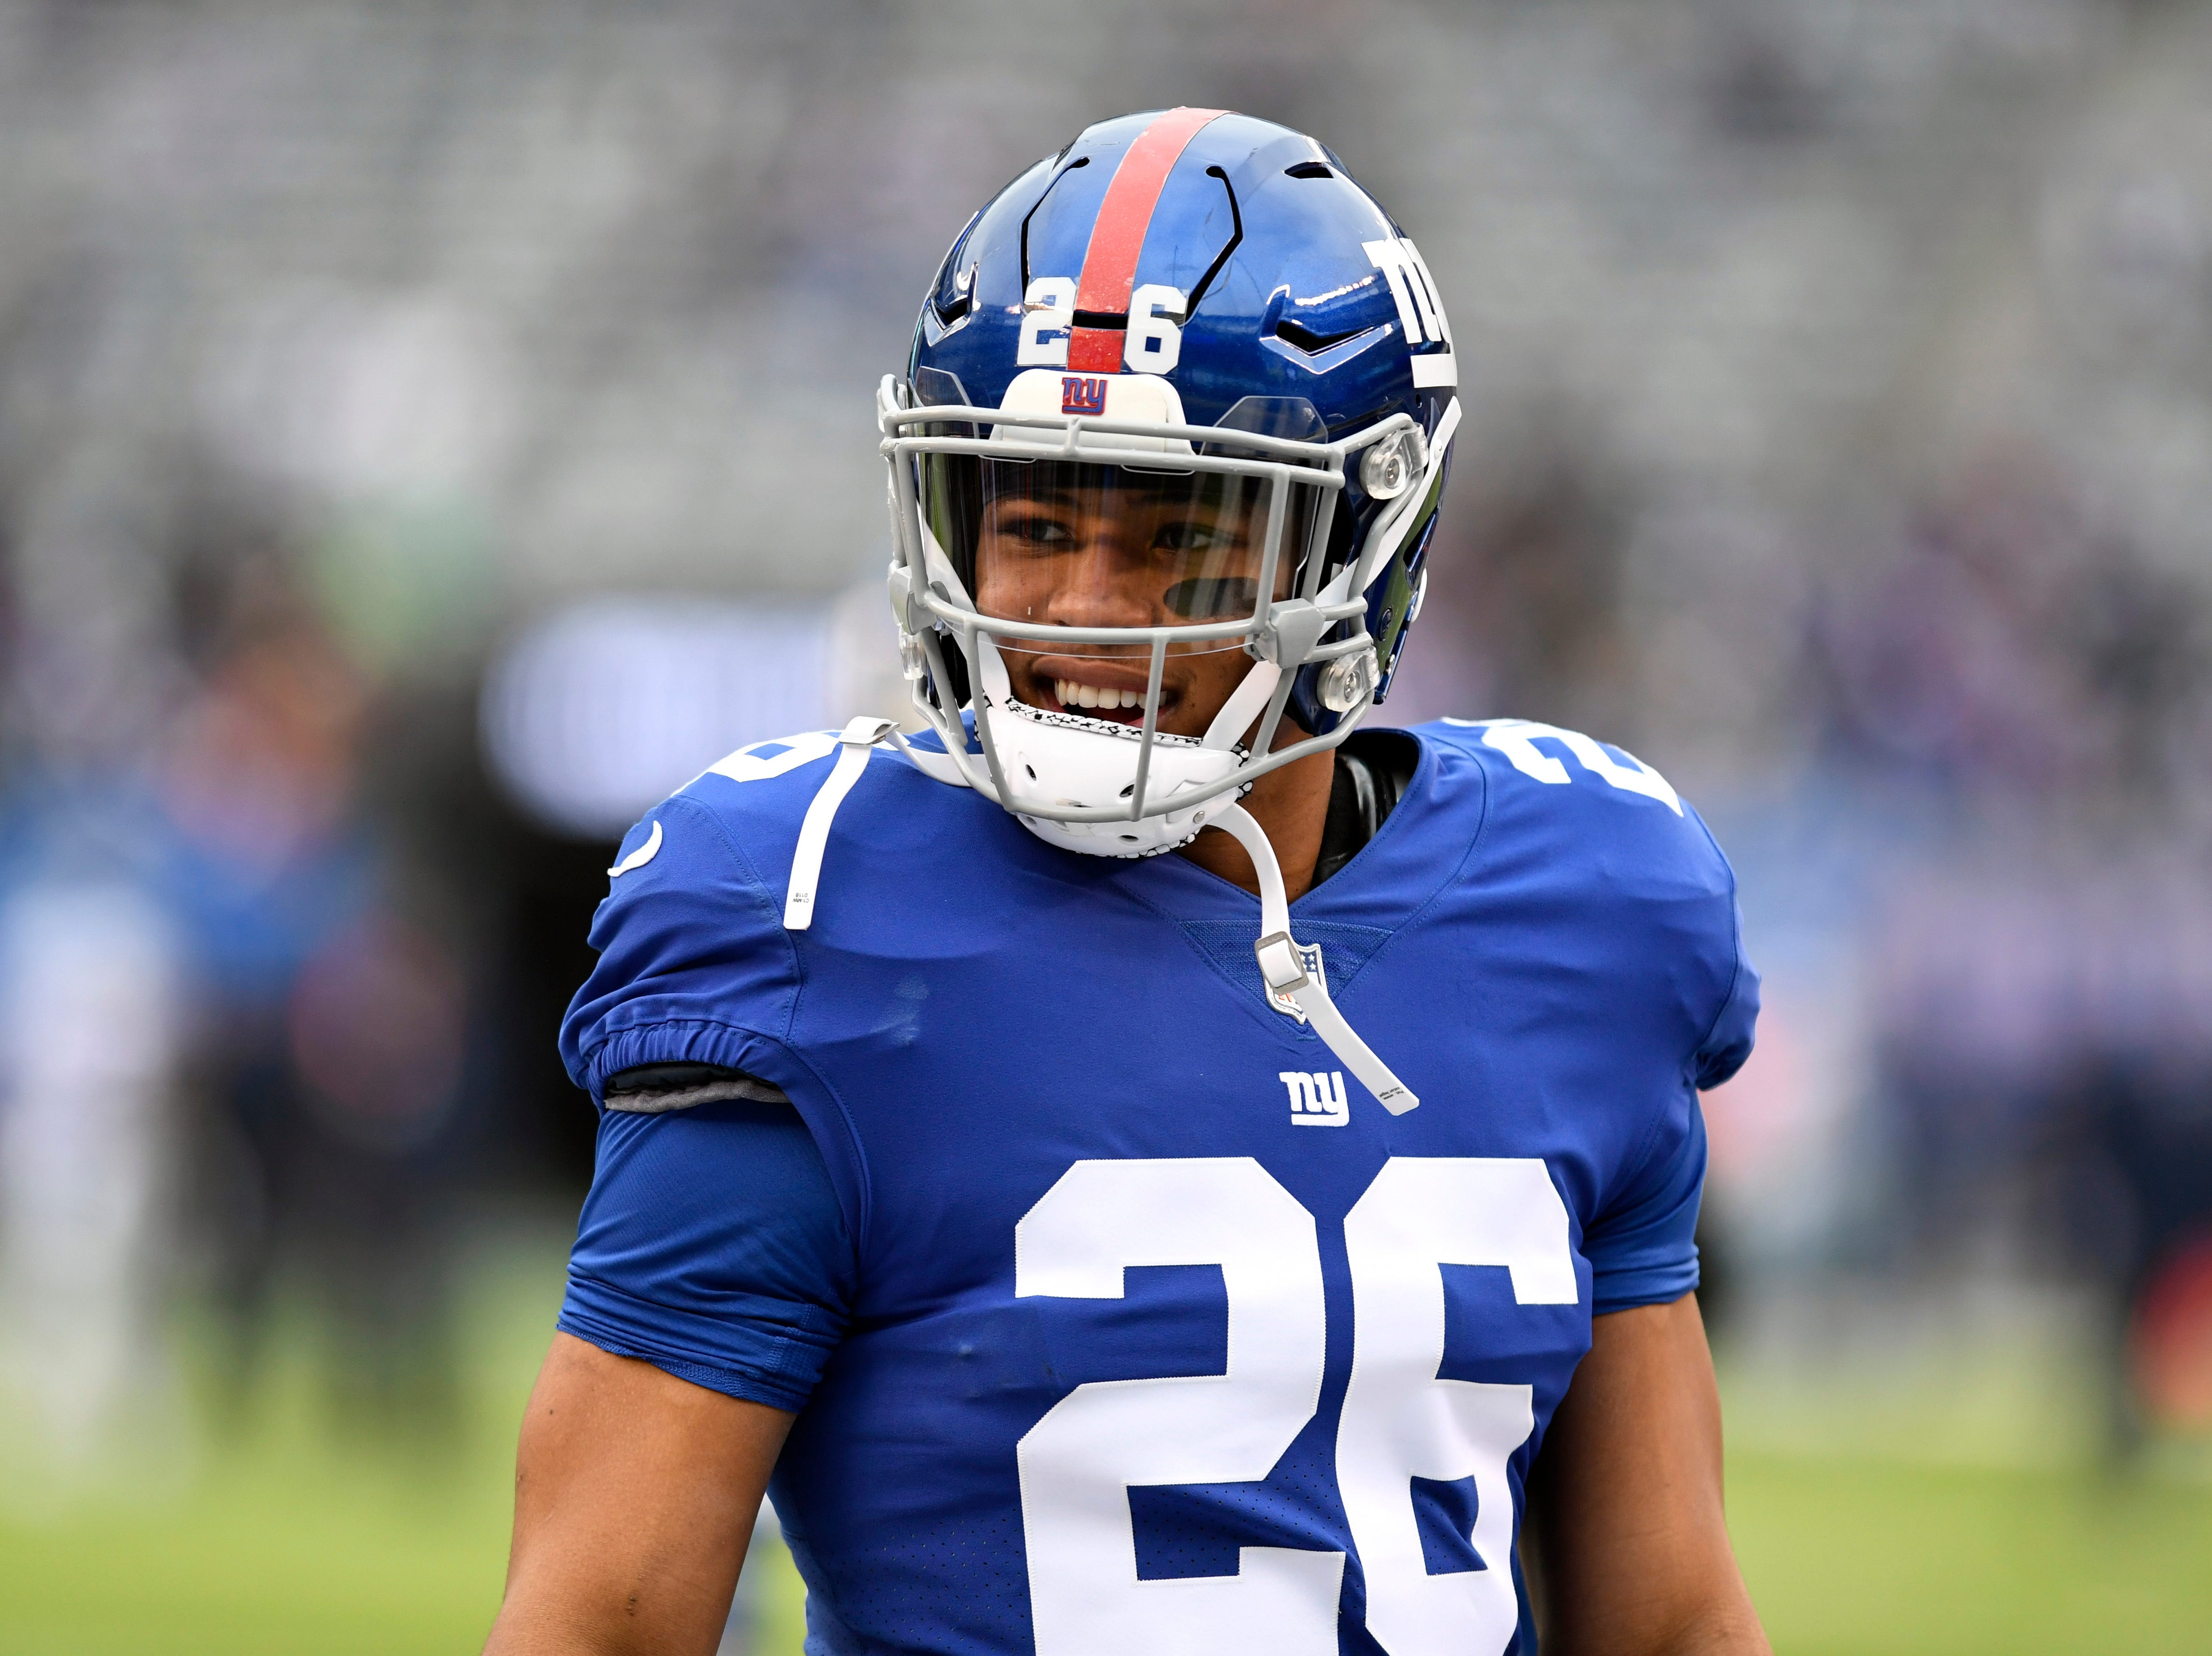 New York Giants running back Saquon Barkley (26) smiles towards his family on the sideline during warmups. The New York Giants face the Dallas Cowboys in the last regular season game on Sunday, Dec. 30, 2018, in East Rutherford.